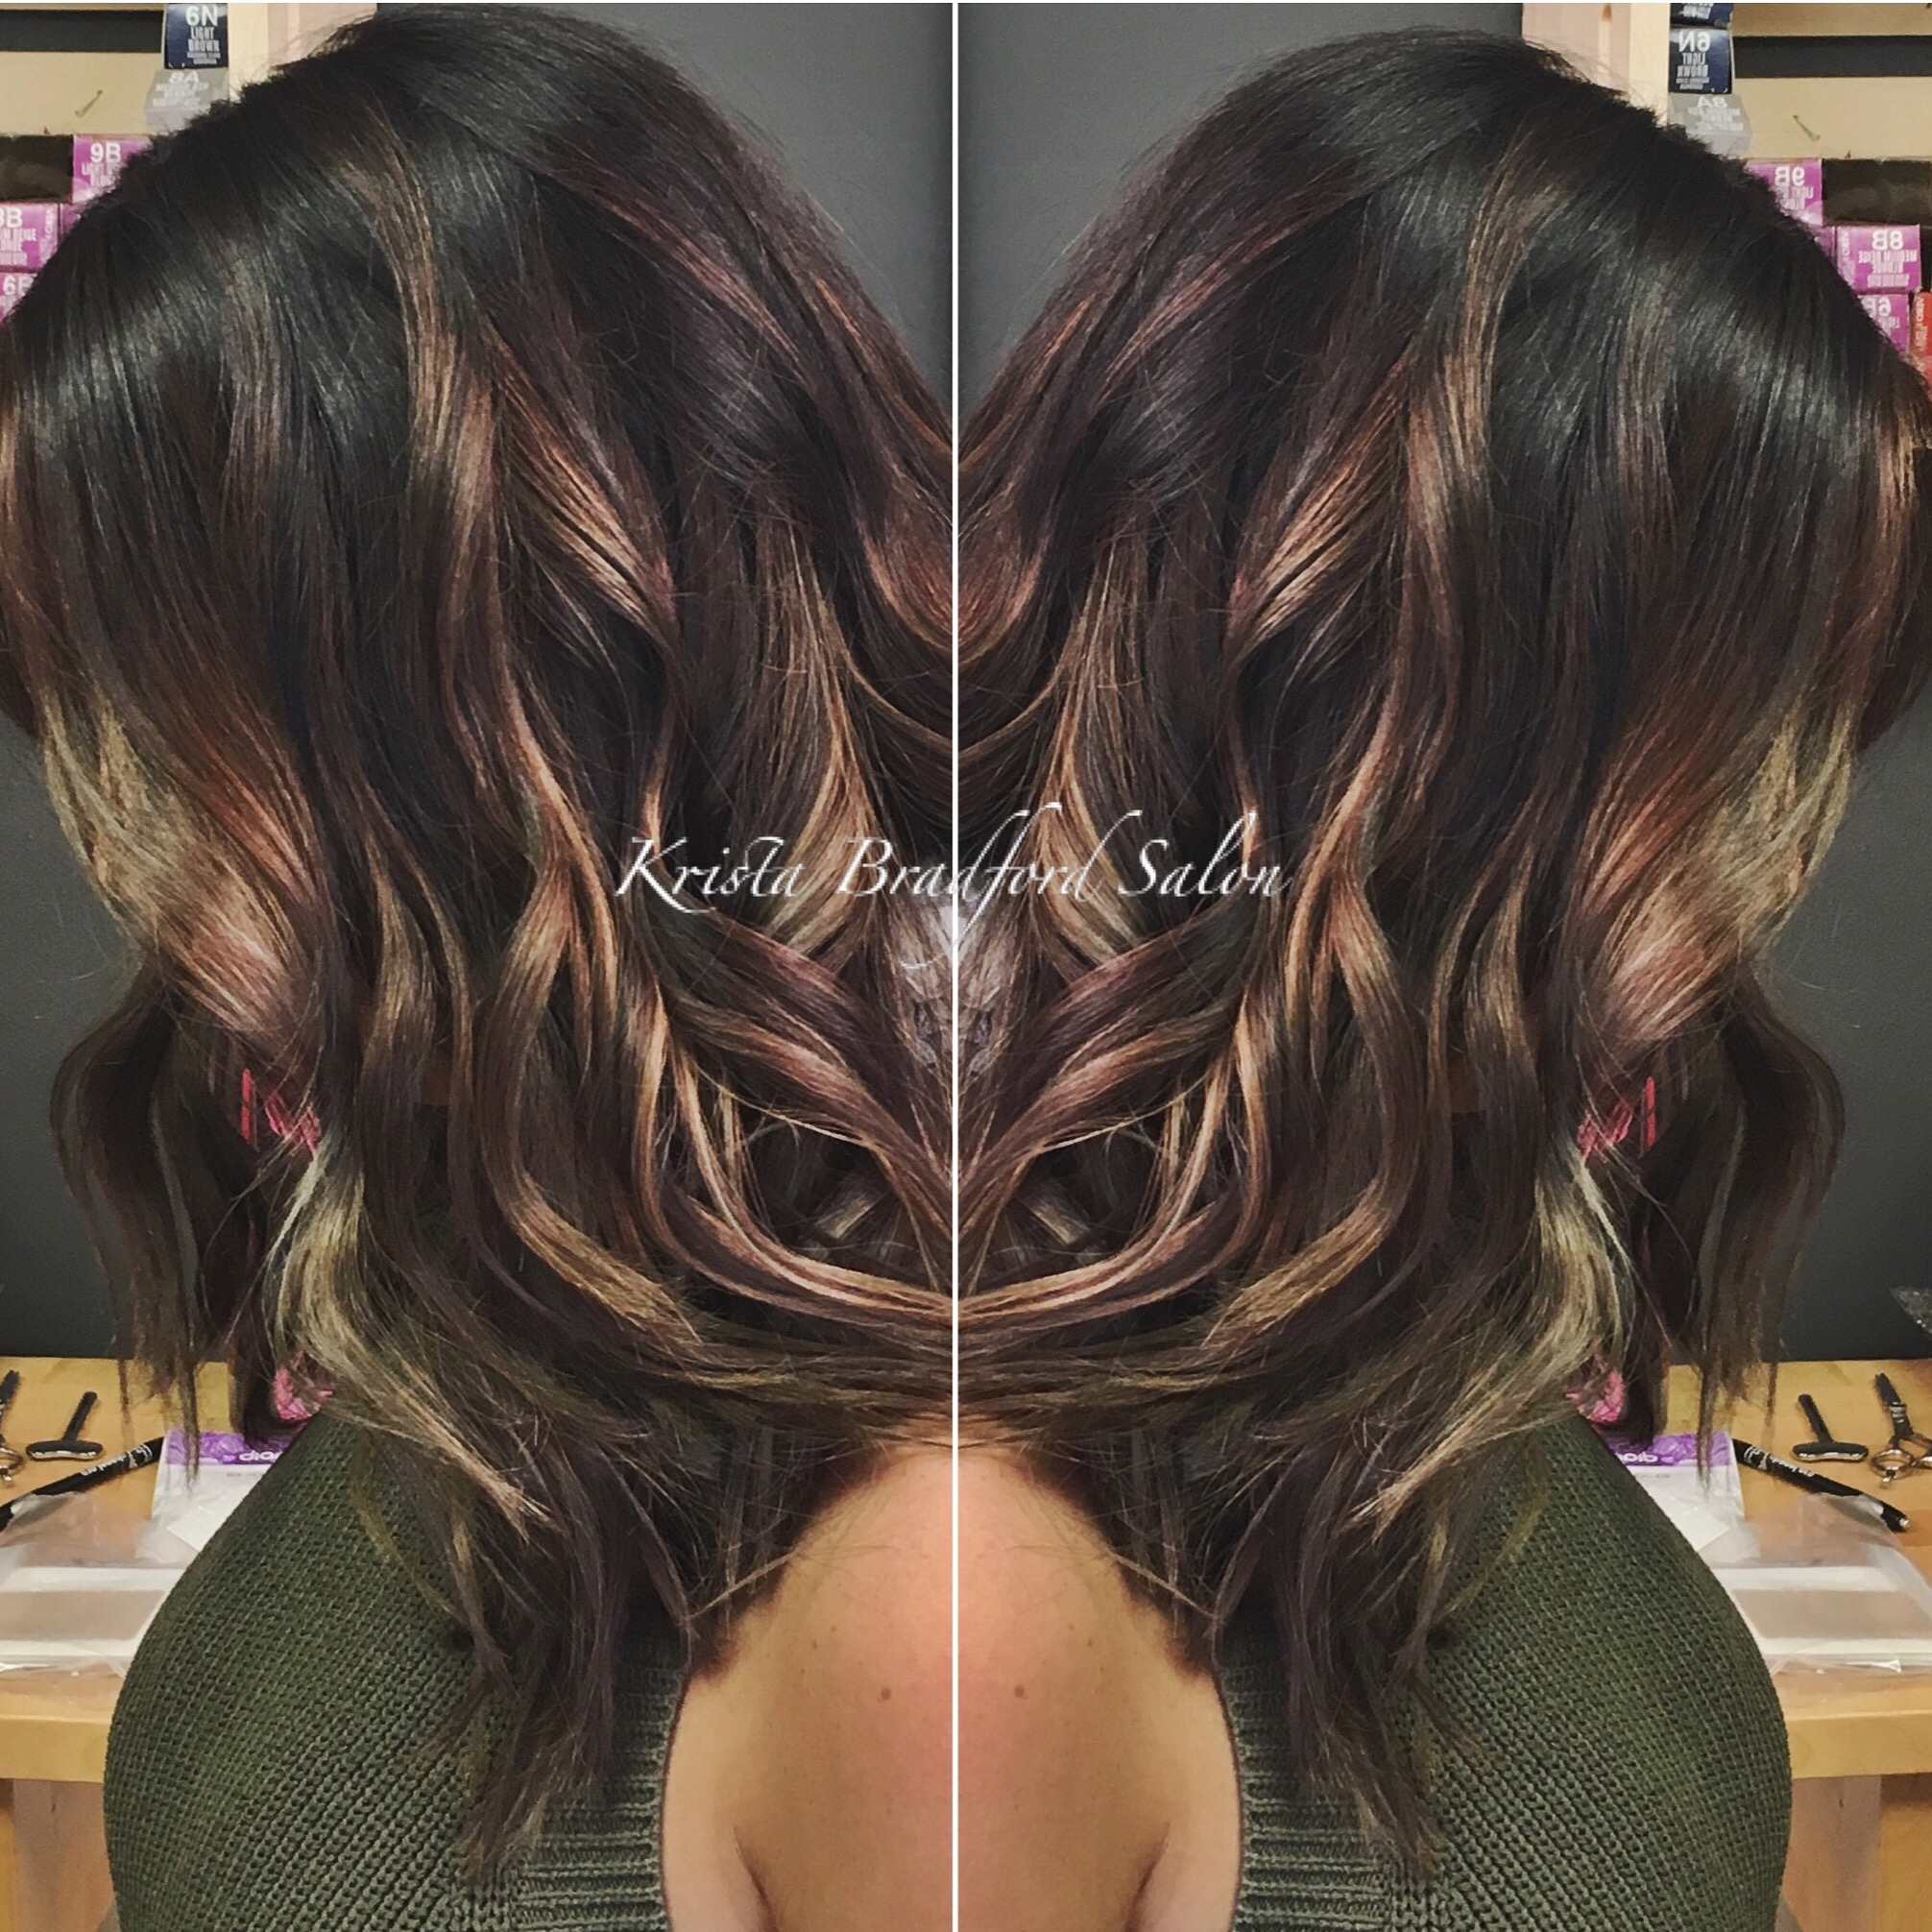 Lob Haircut & Balayage Color